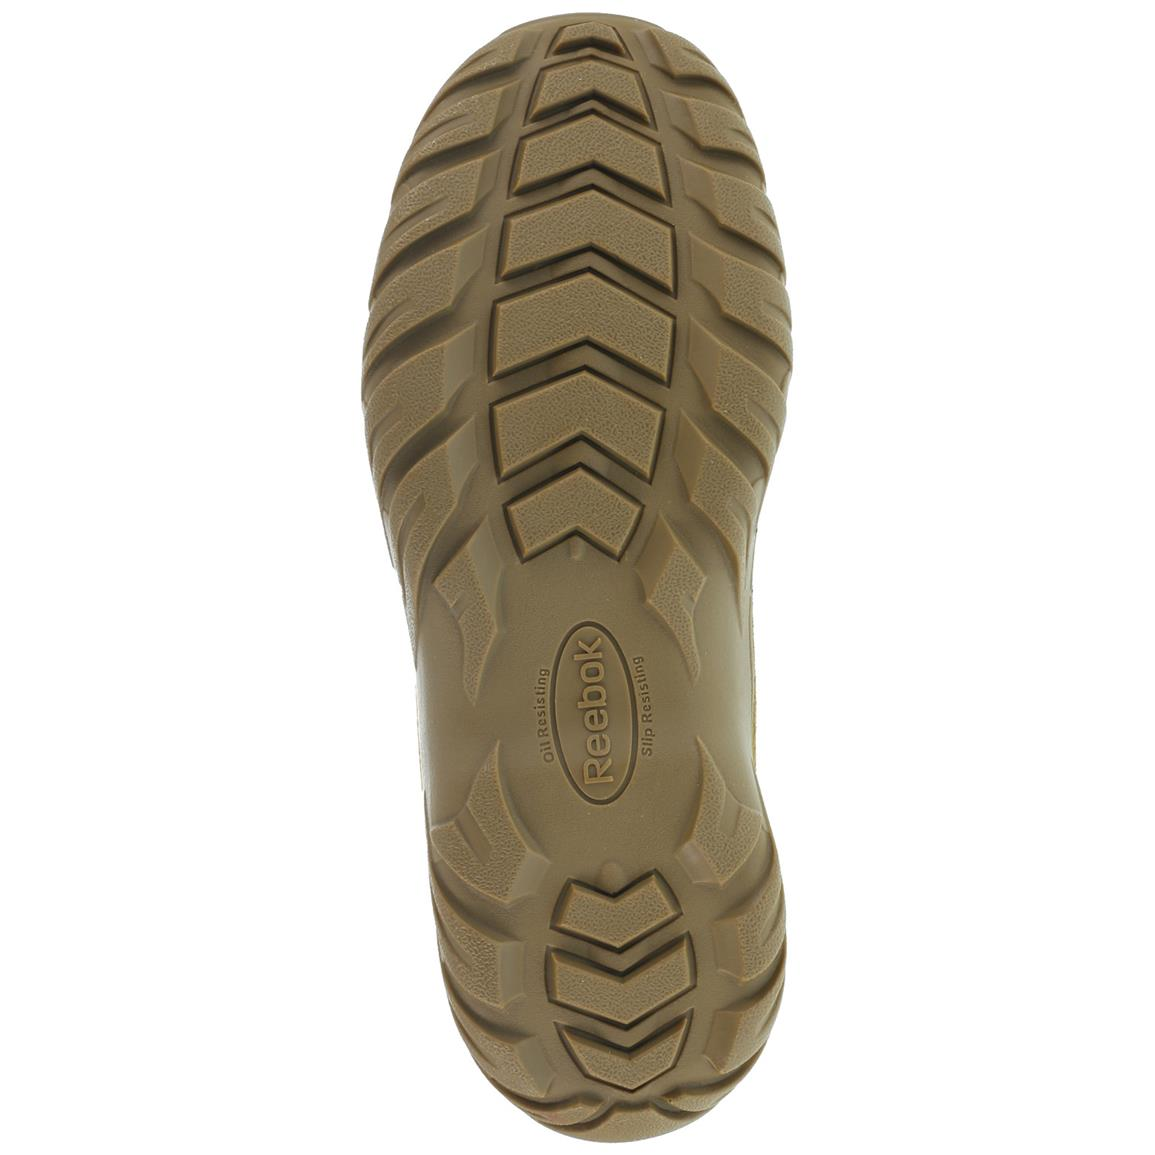 RECON Rugged Terrain polyurethane outsole is slip-, oil- and chemical-resistant